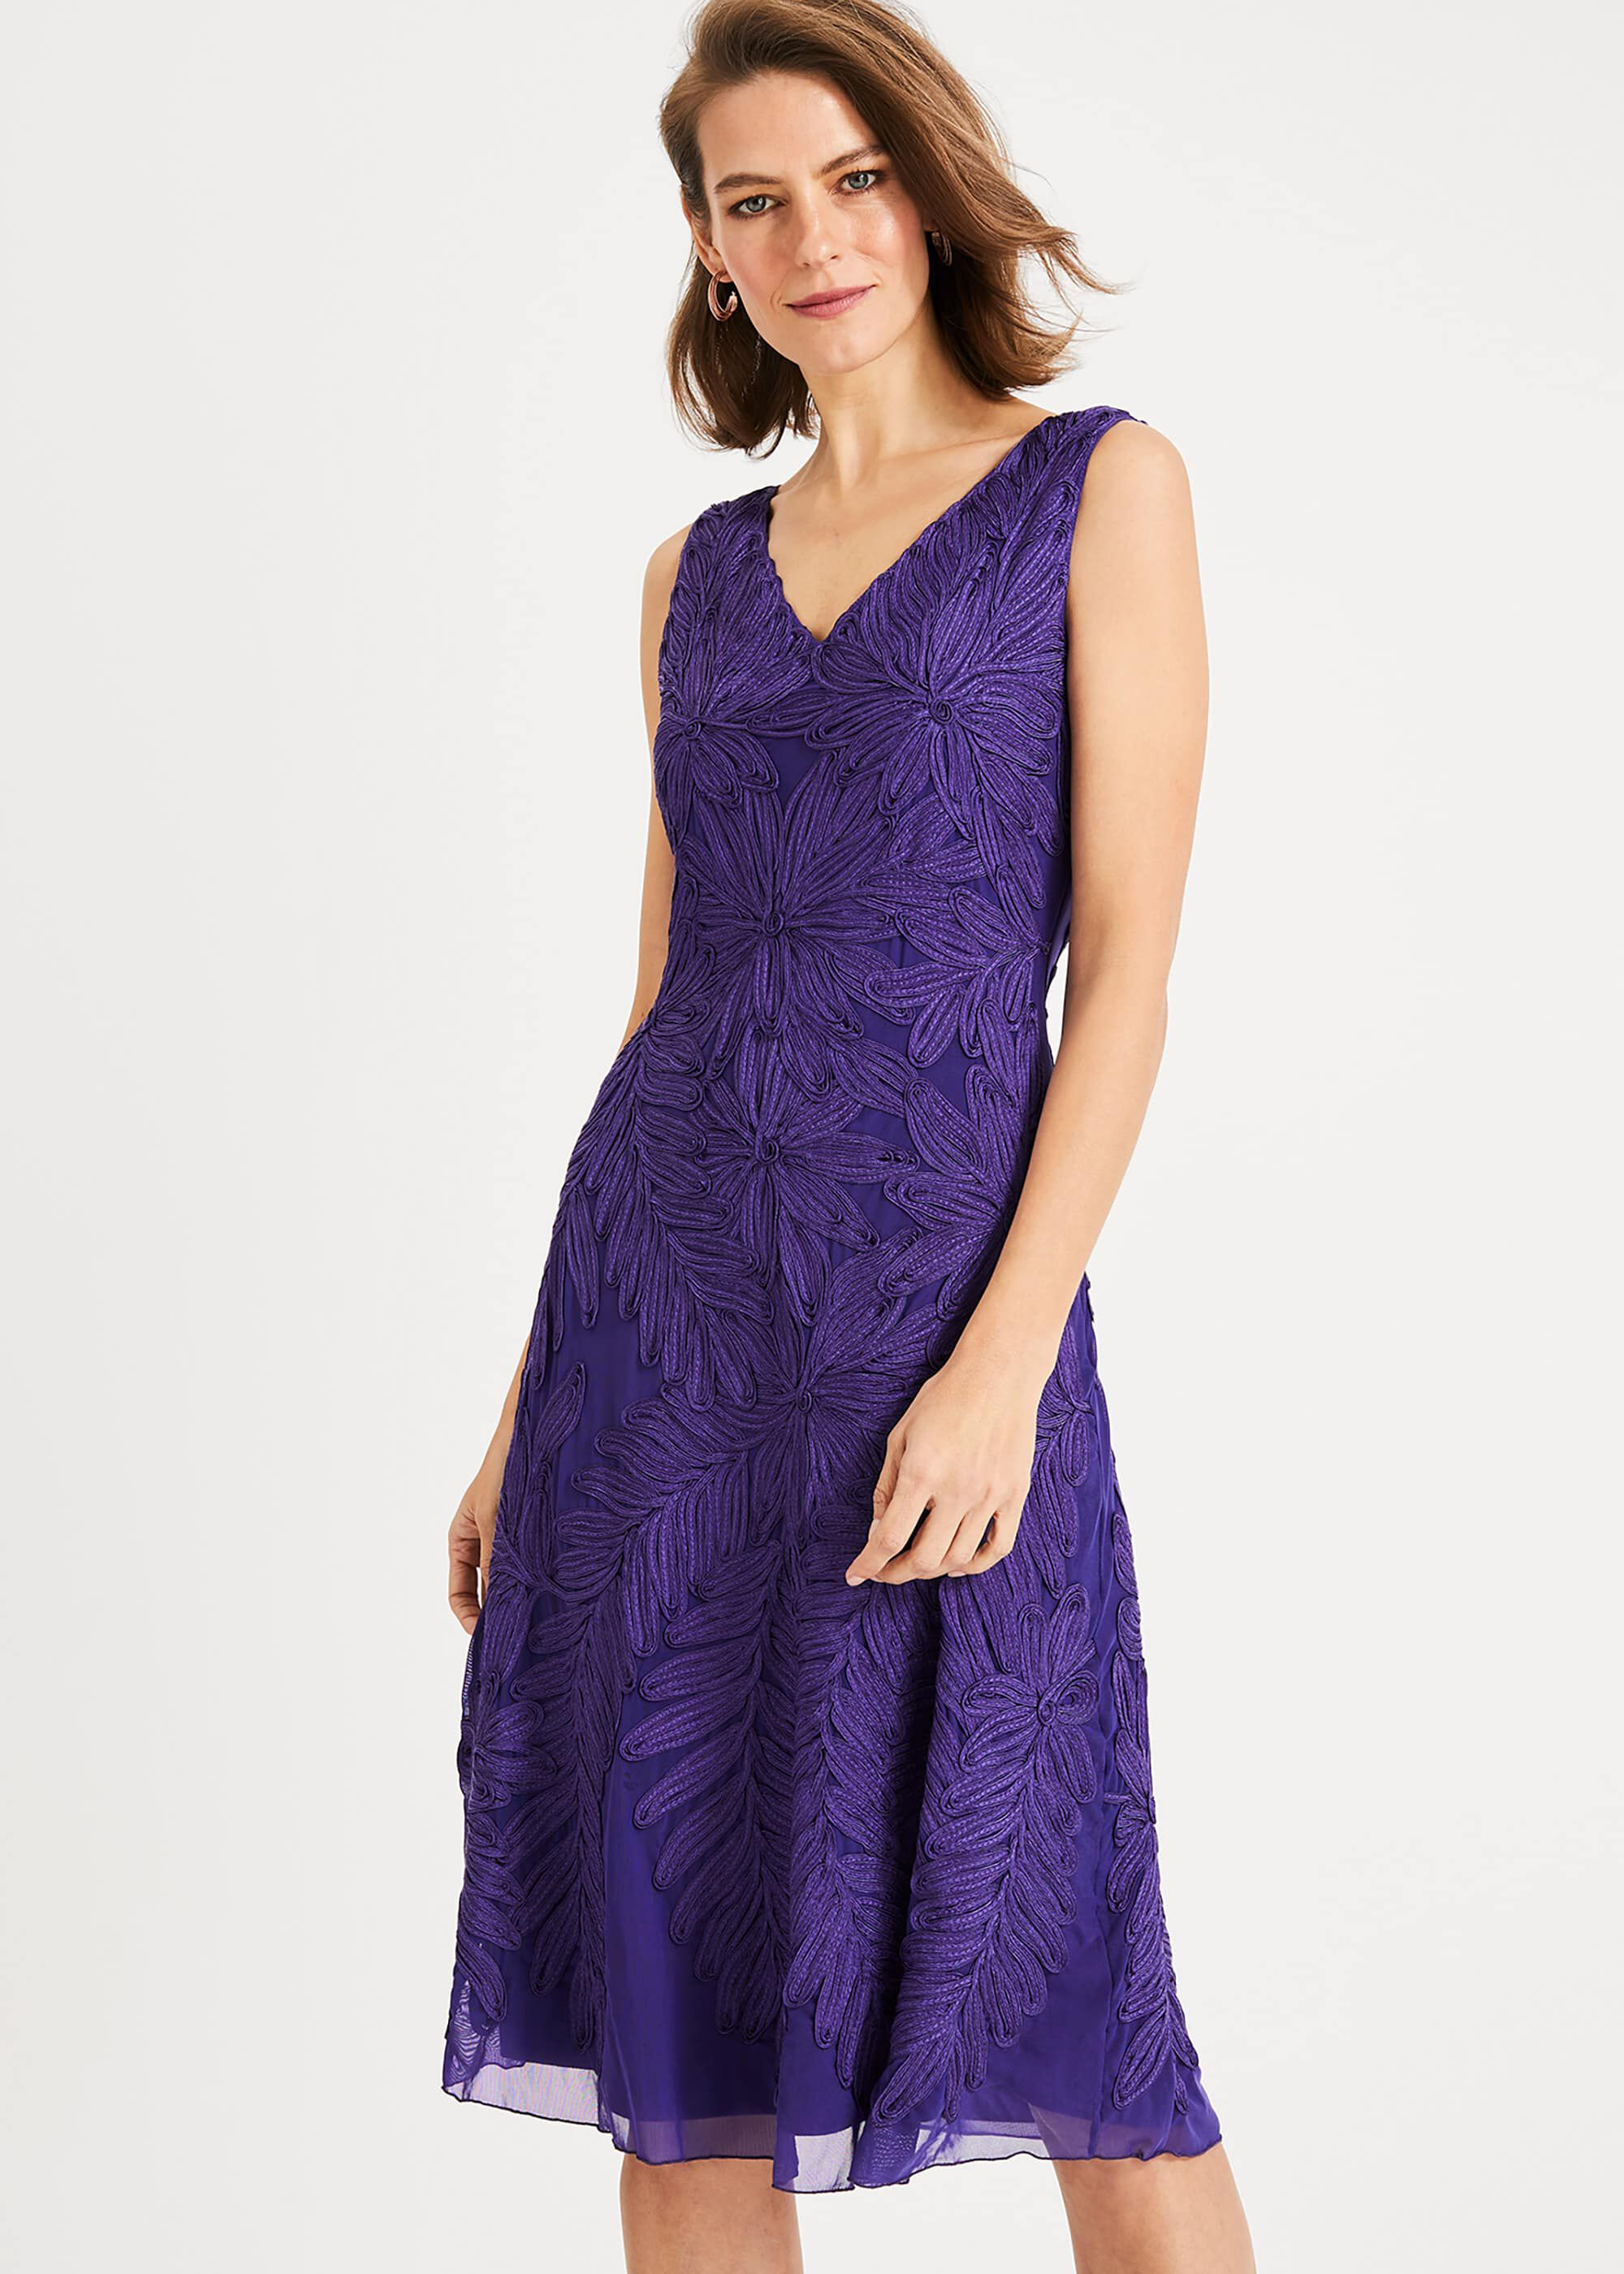 Phase Eight Denise Tapework Dress, Purple, Fit & Flare, Occasion Dress